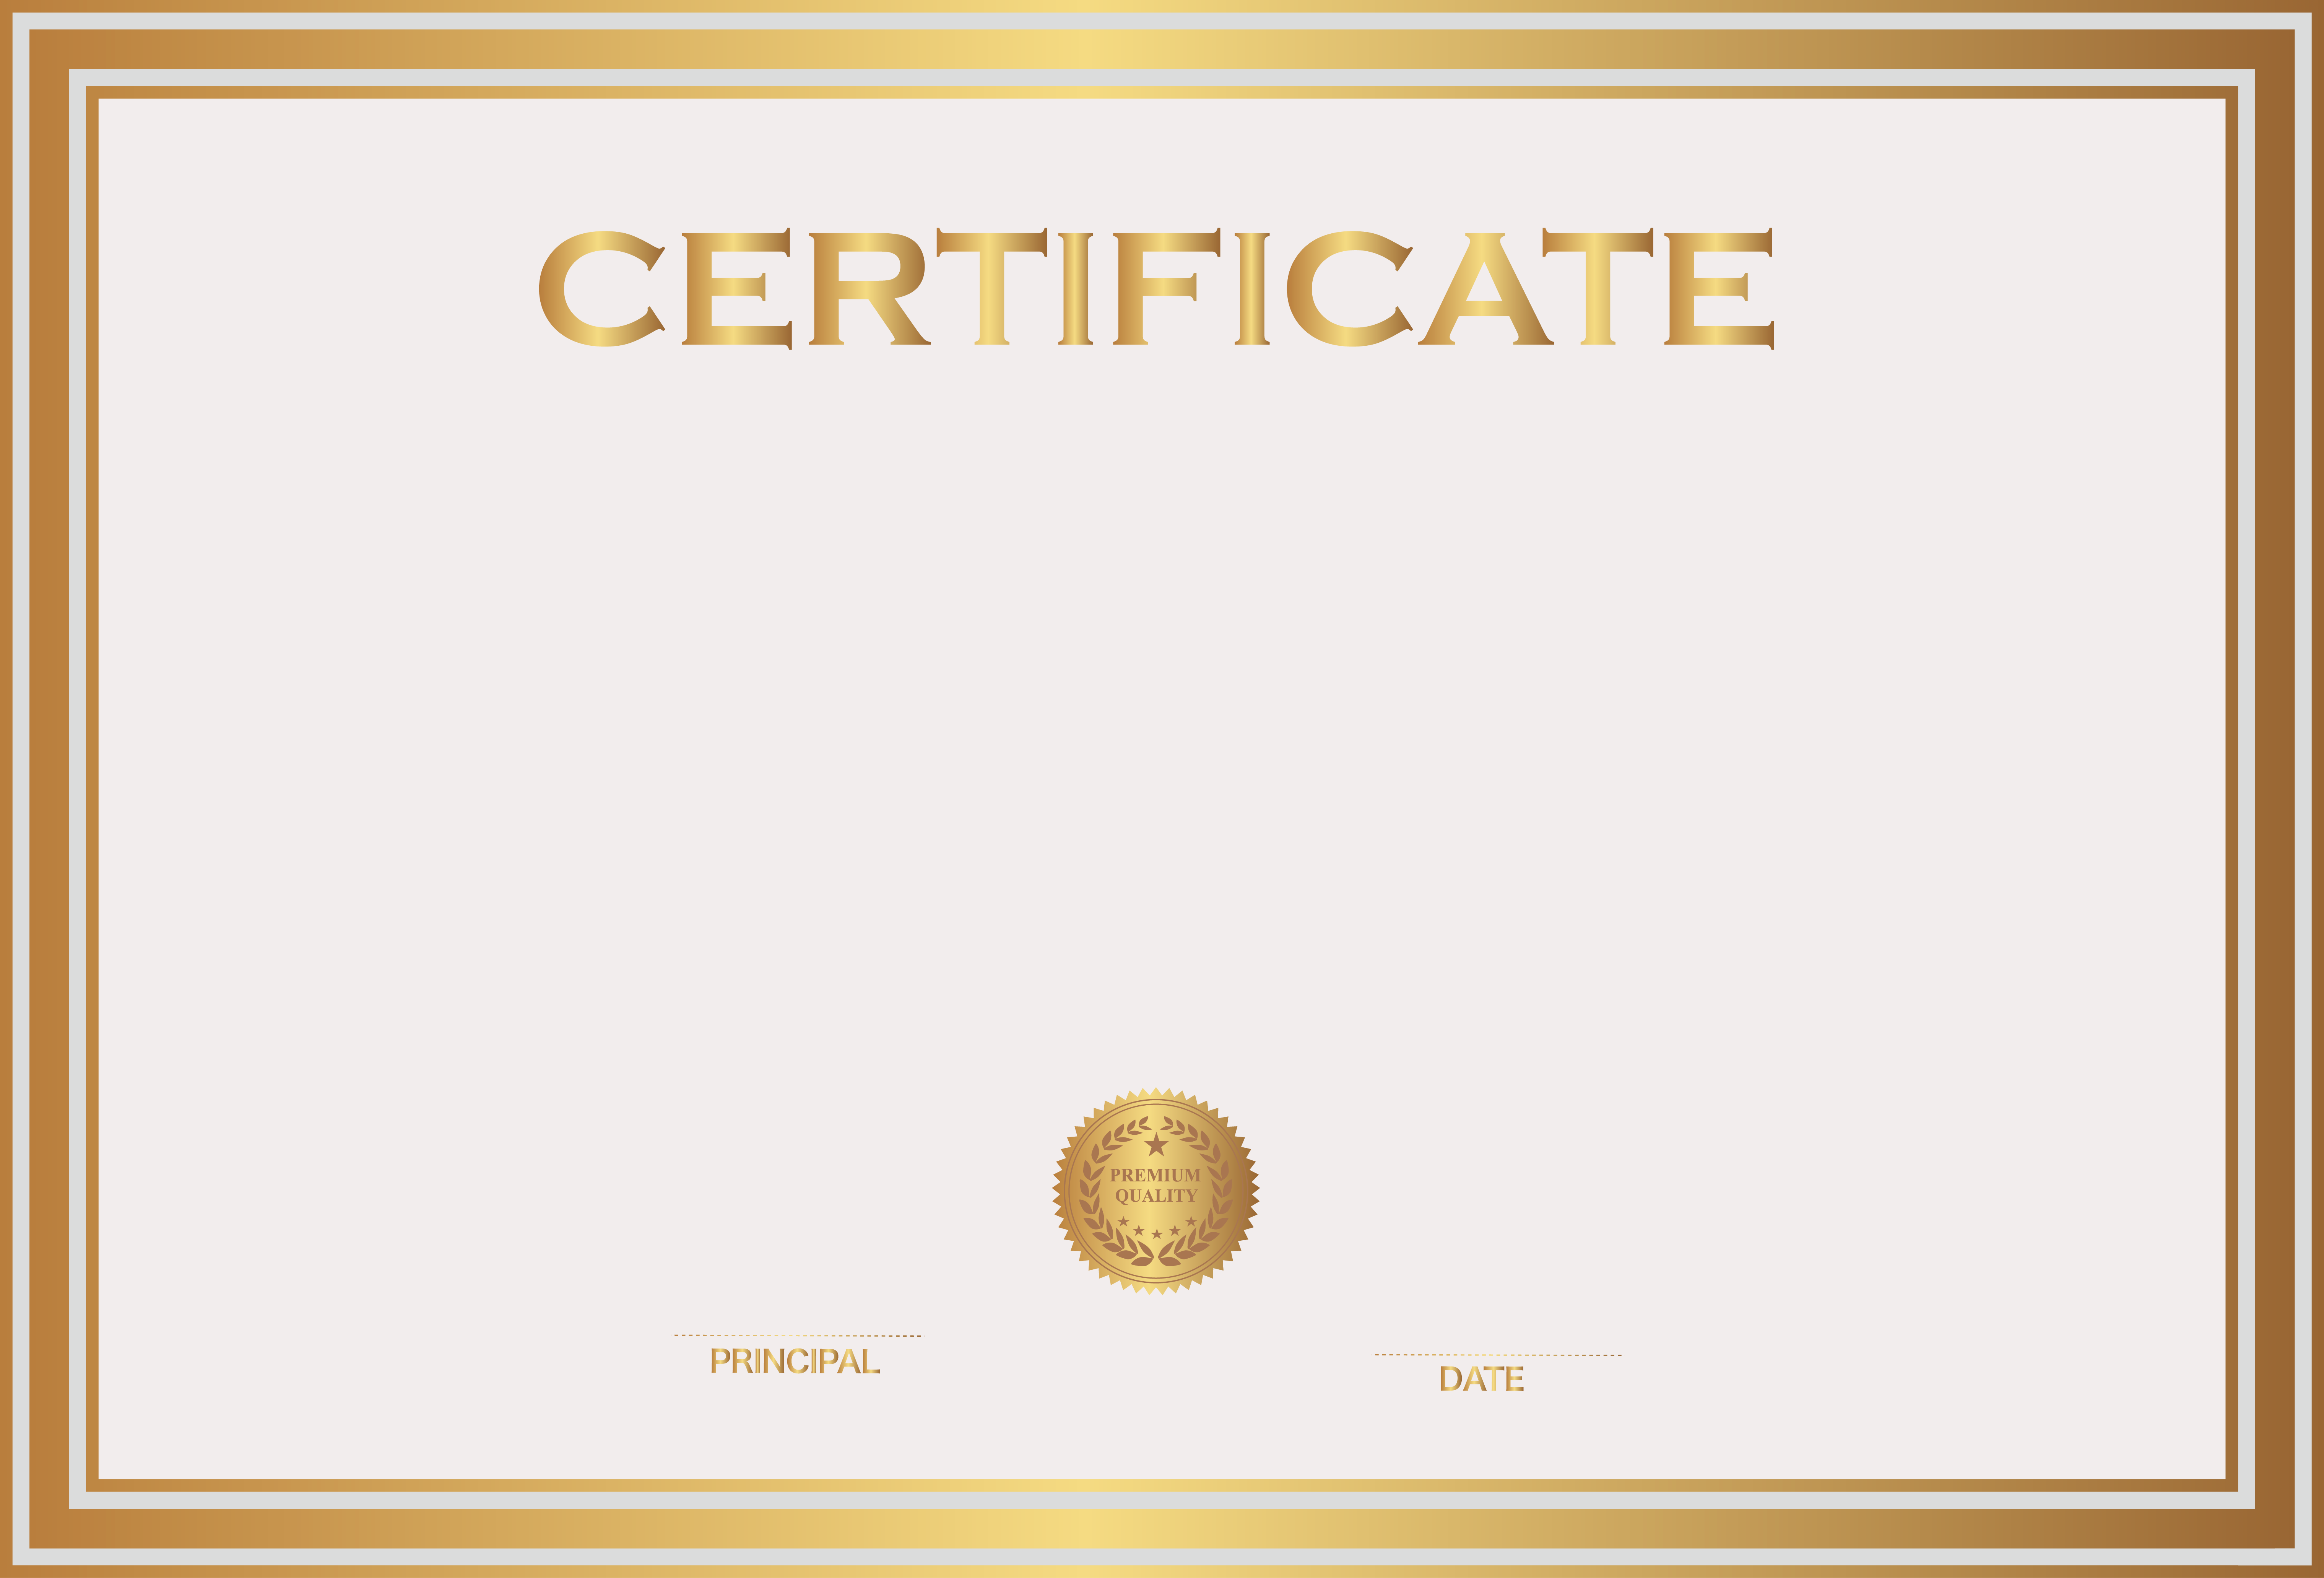 Certificate template png transparent png images pluspng download certificate template png images transparent gallery advertisement certificate template png yadclub Gallery